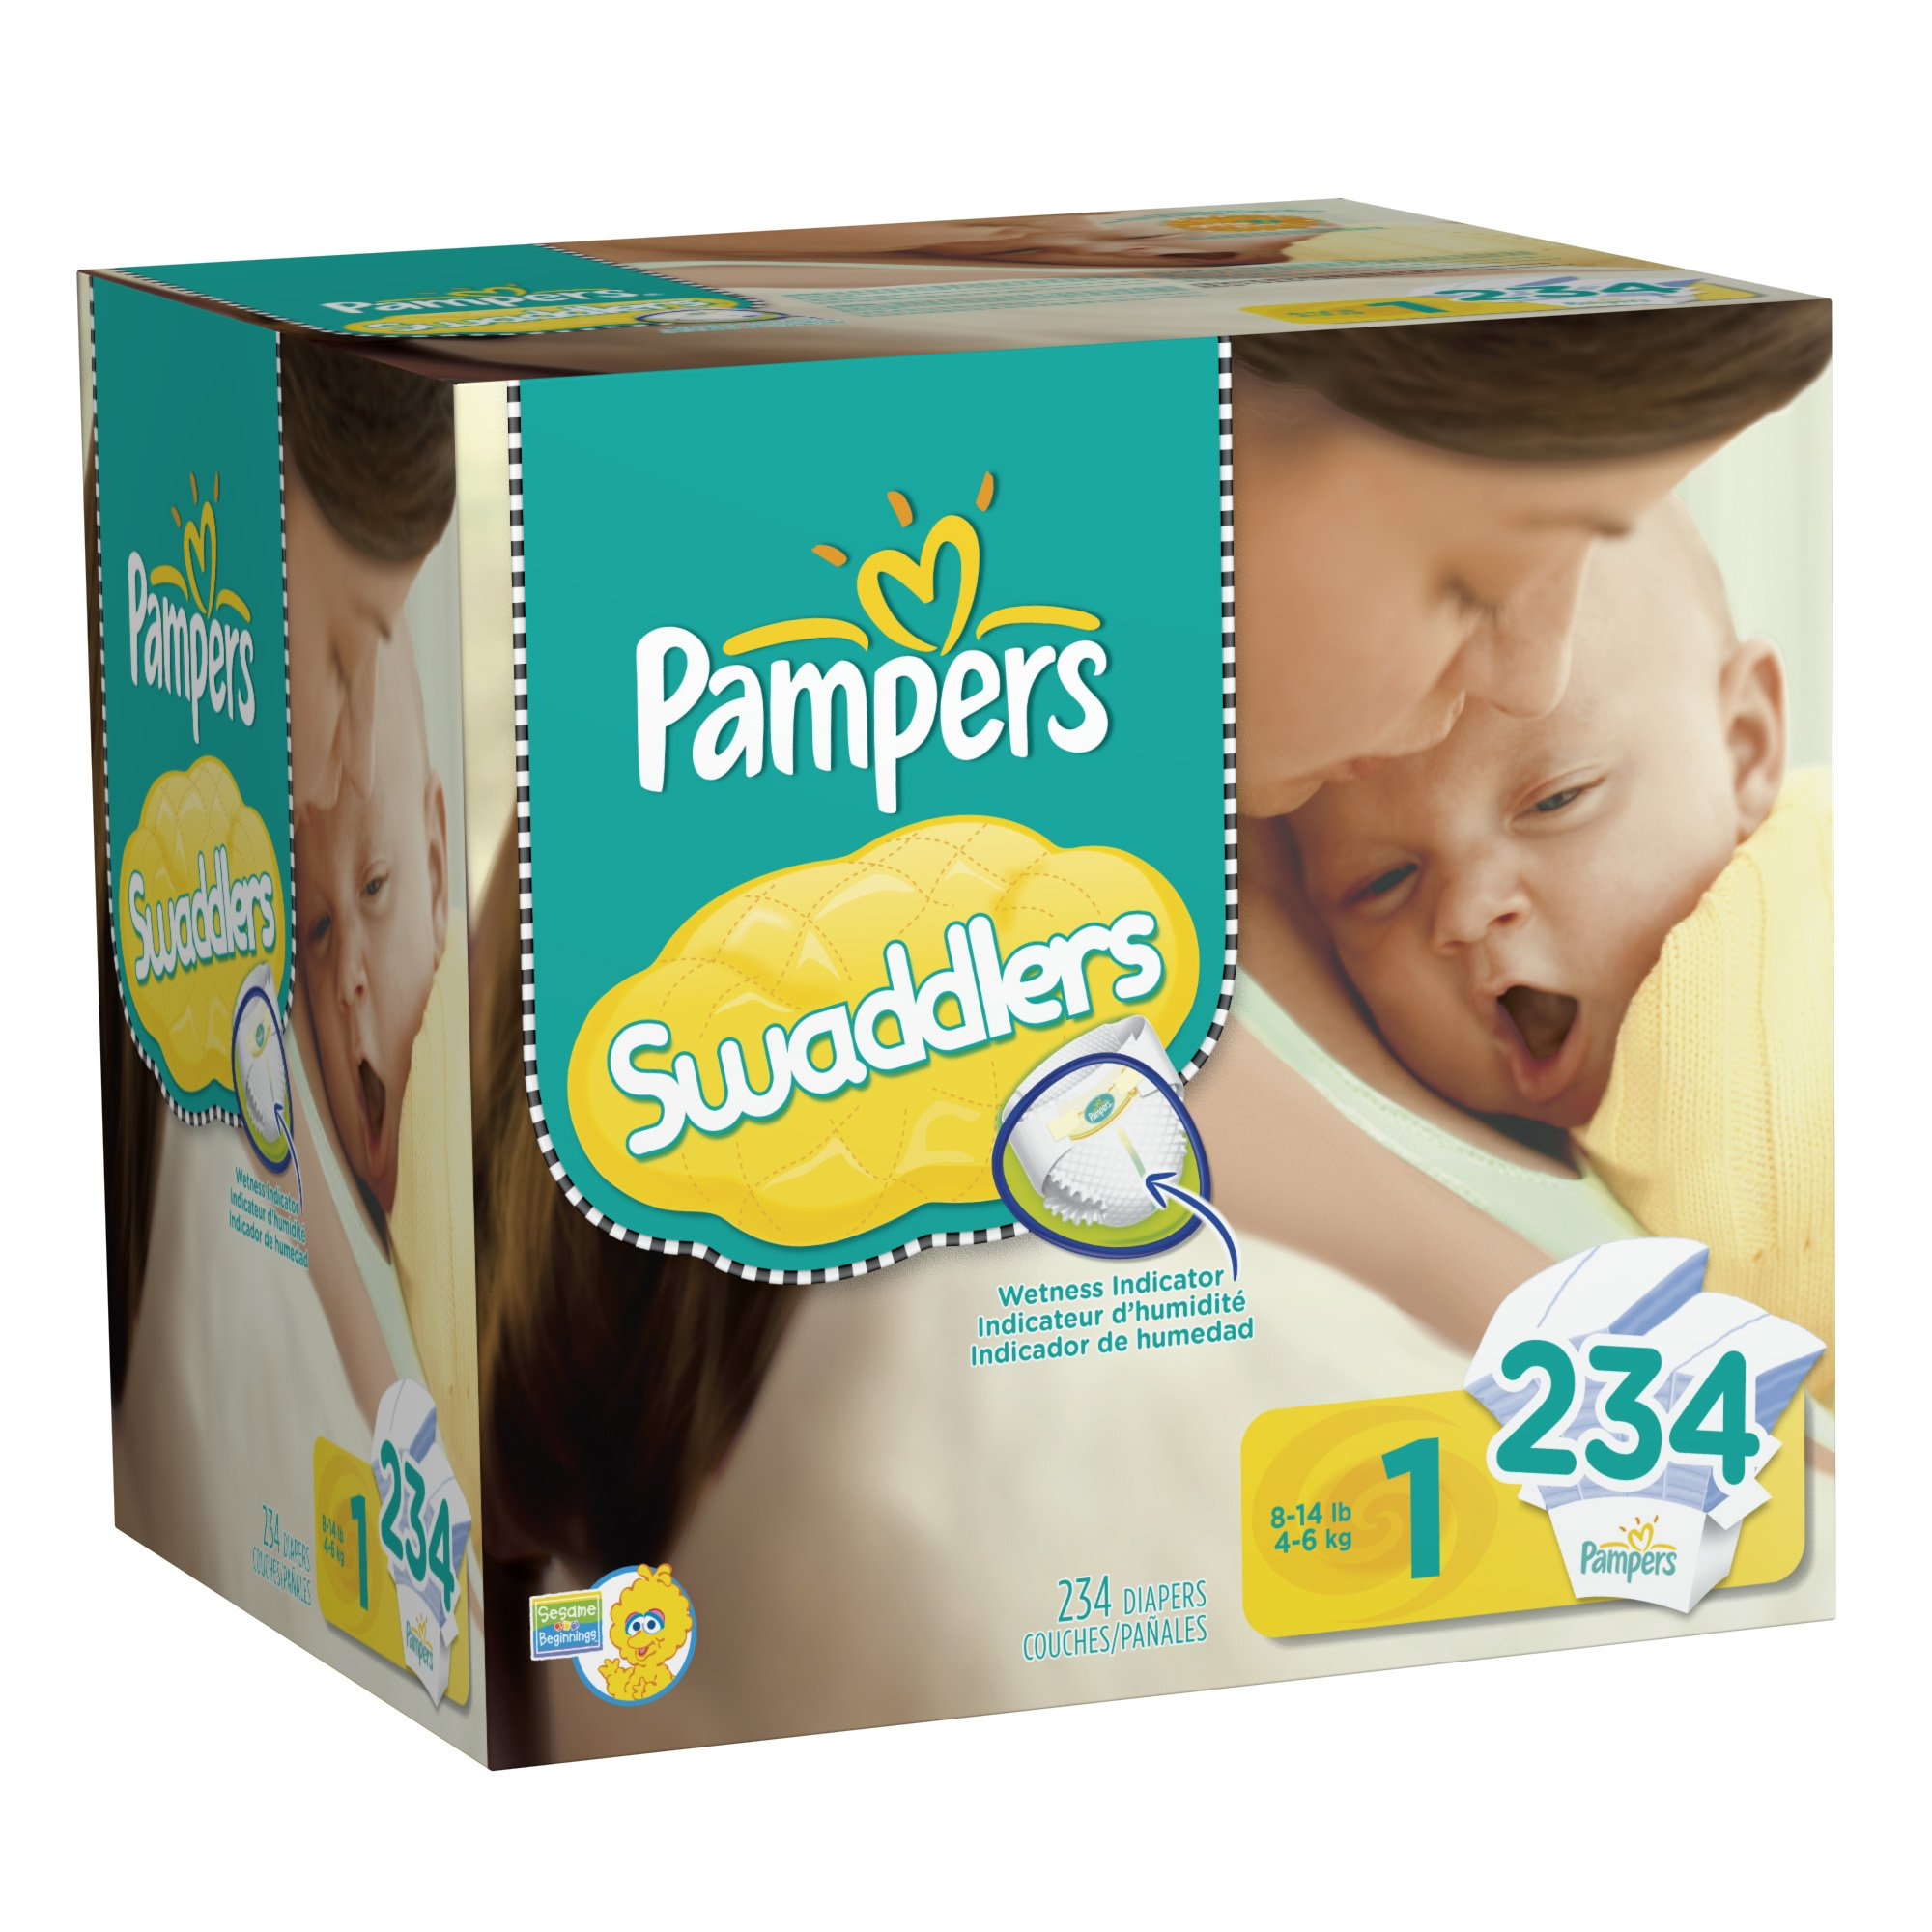 Pampers Swaddlers Disposable Diapers Newborn Size 1 (8-14 lb), 234 Count